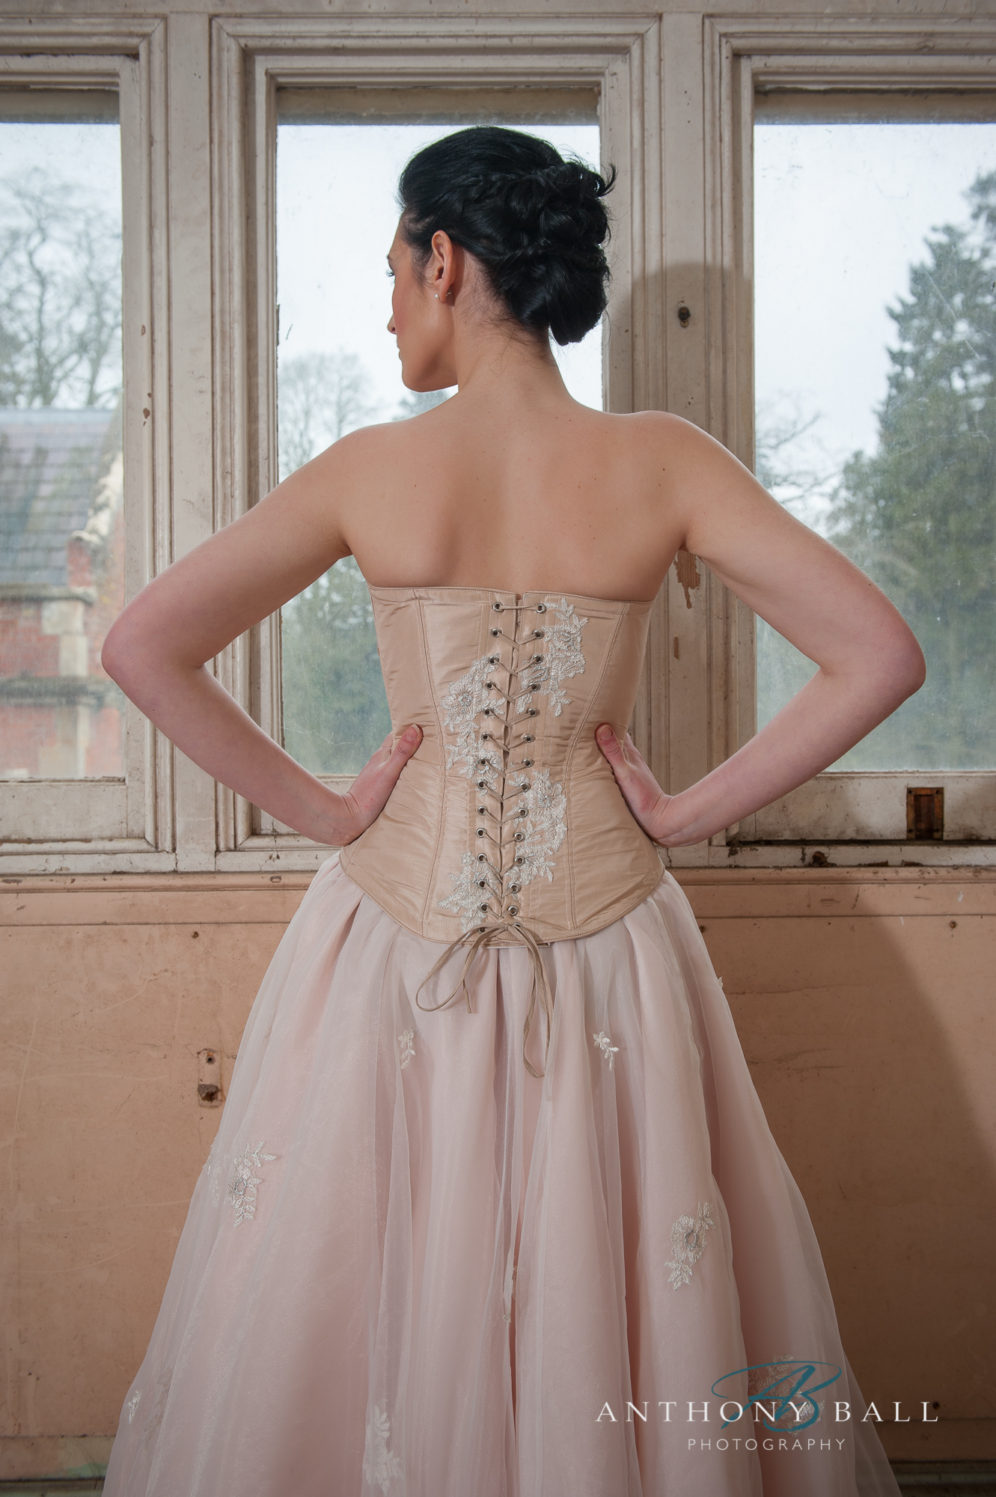 Wedding Corset Photoshoot